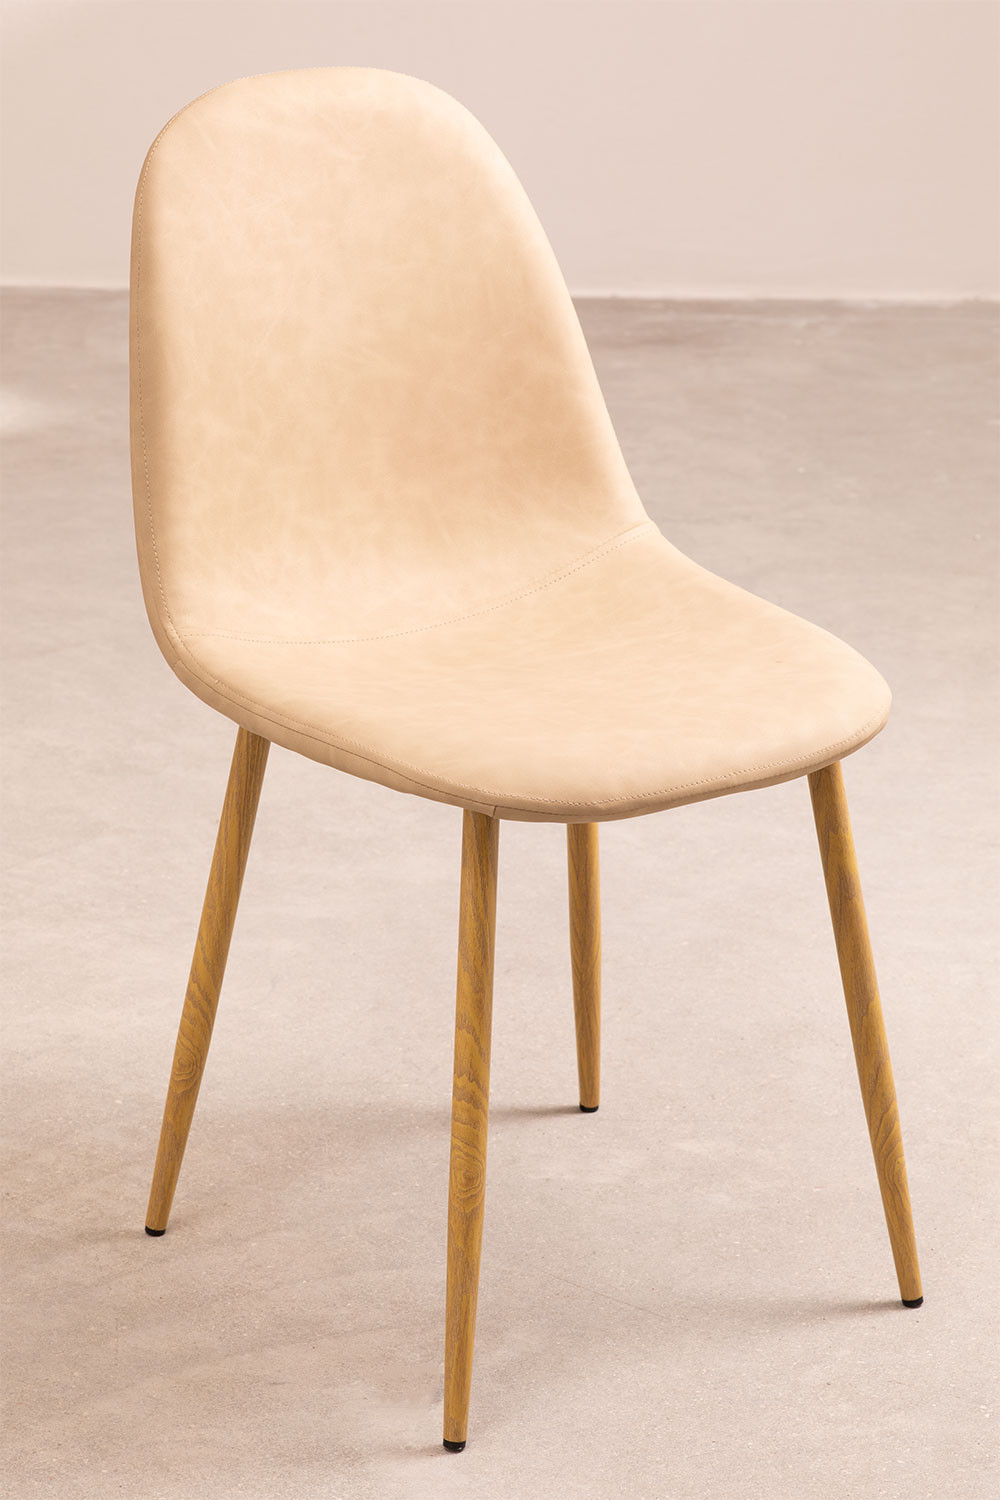 PACK of 4 Glamm Leatherette Chairs, gallery image 1